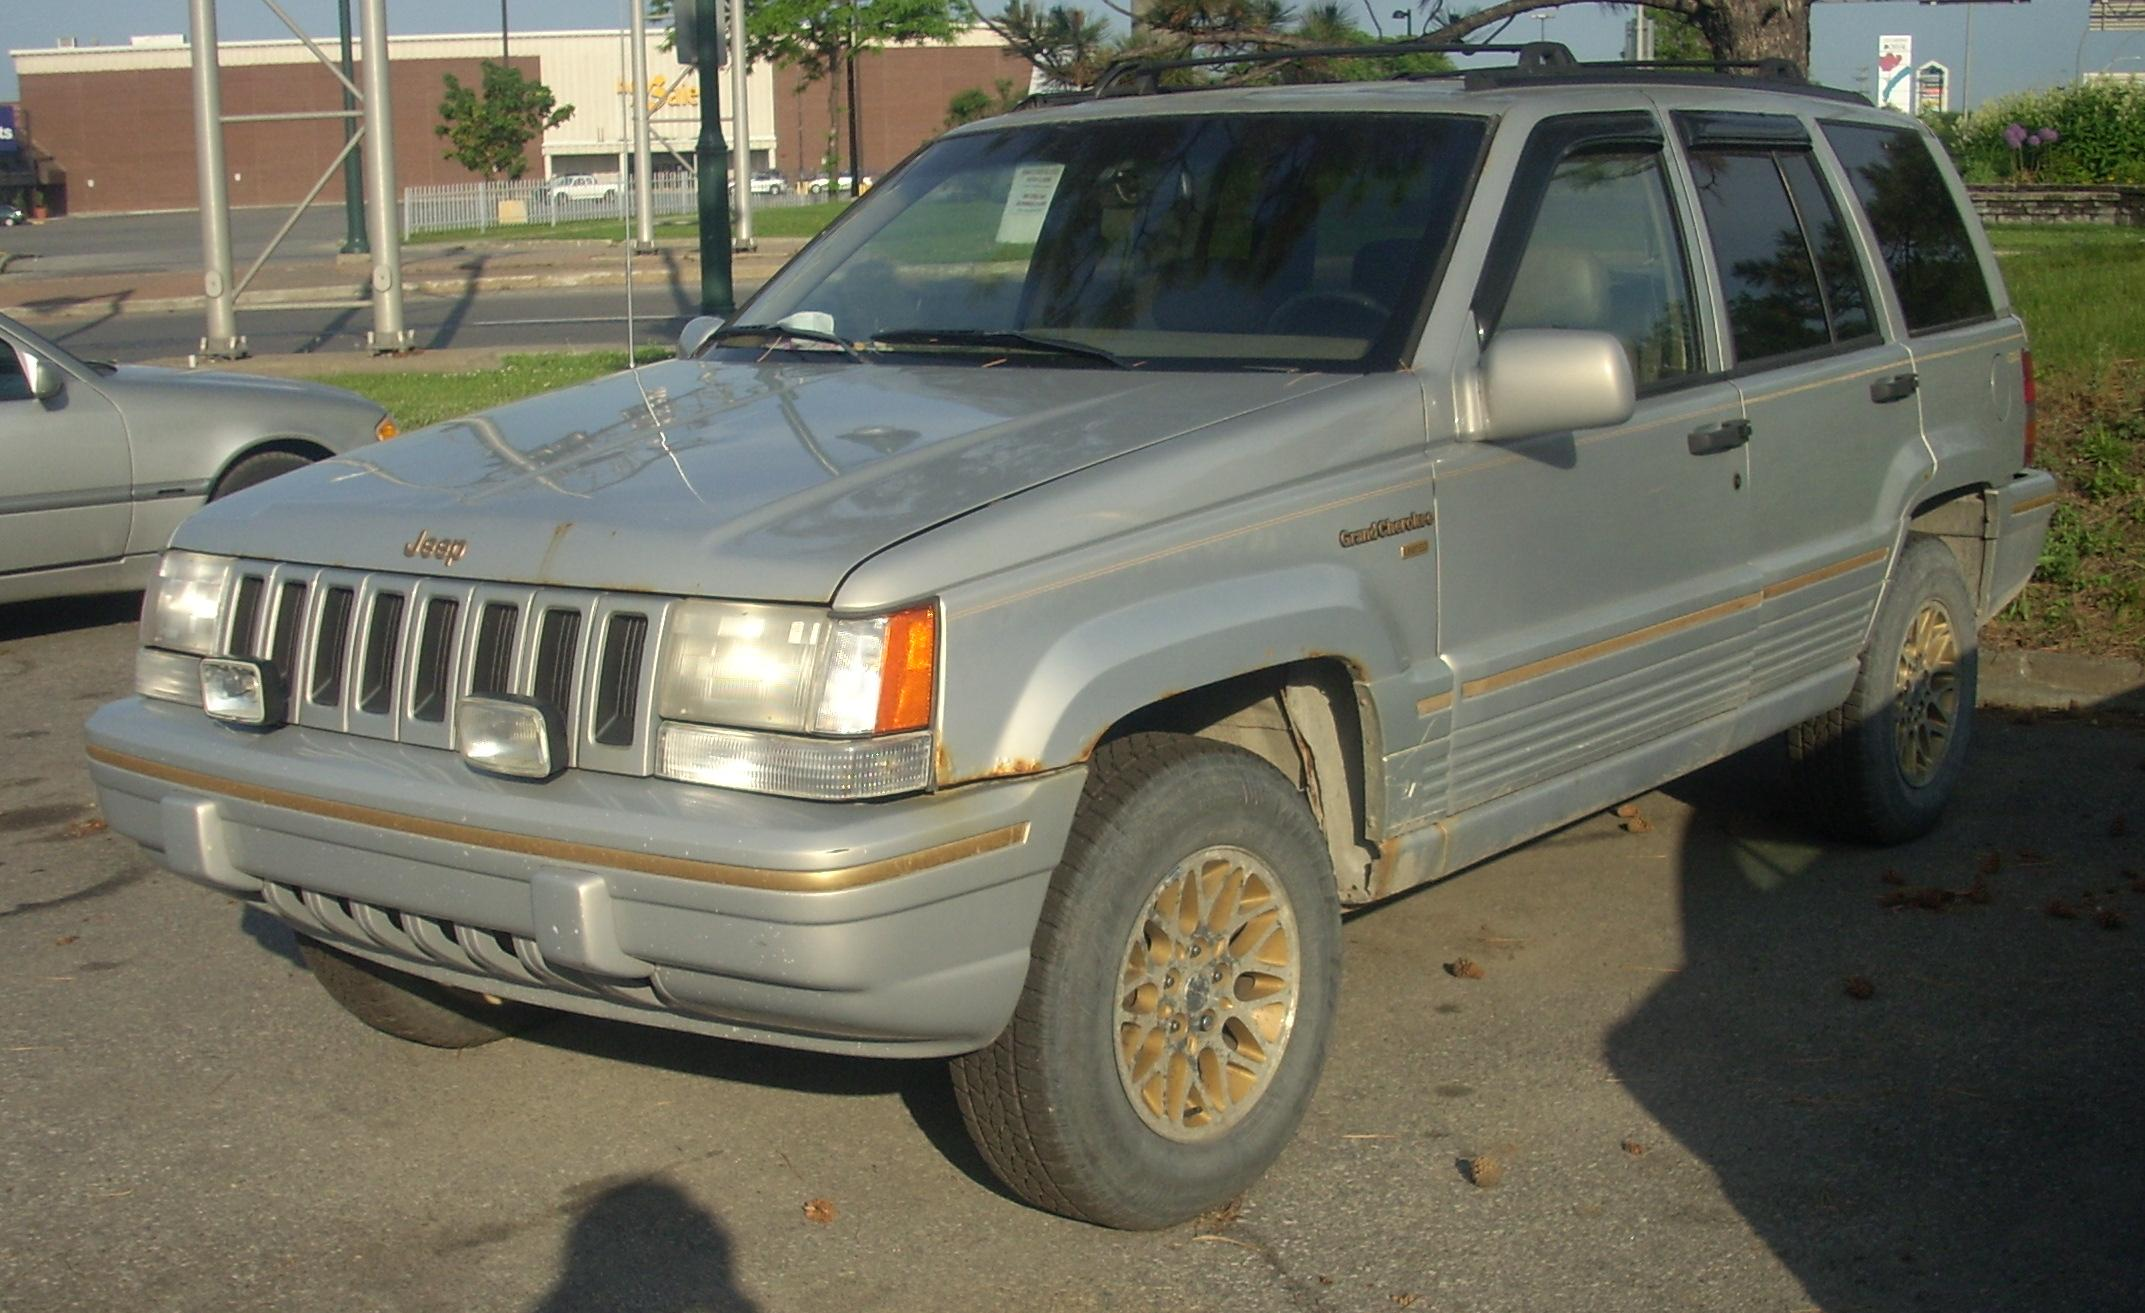 Superb File:1993 1995 Jeep Grand Cherokee Limited.JPG